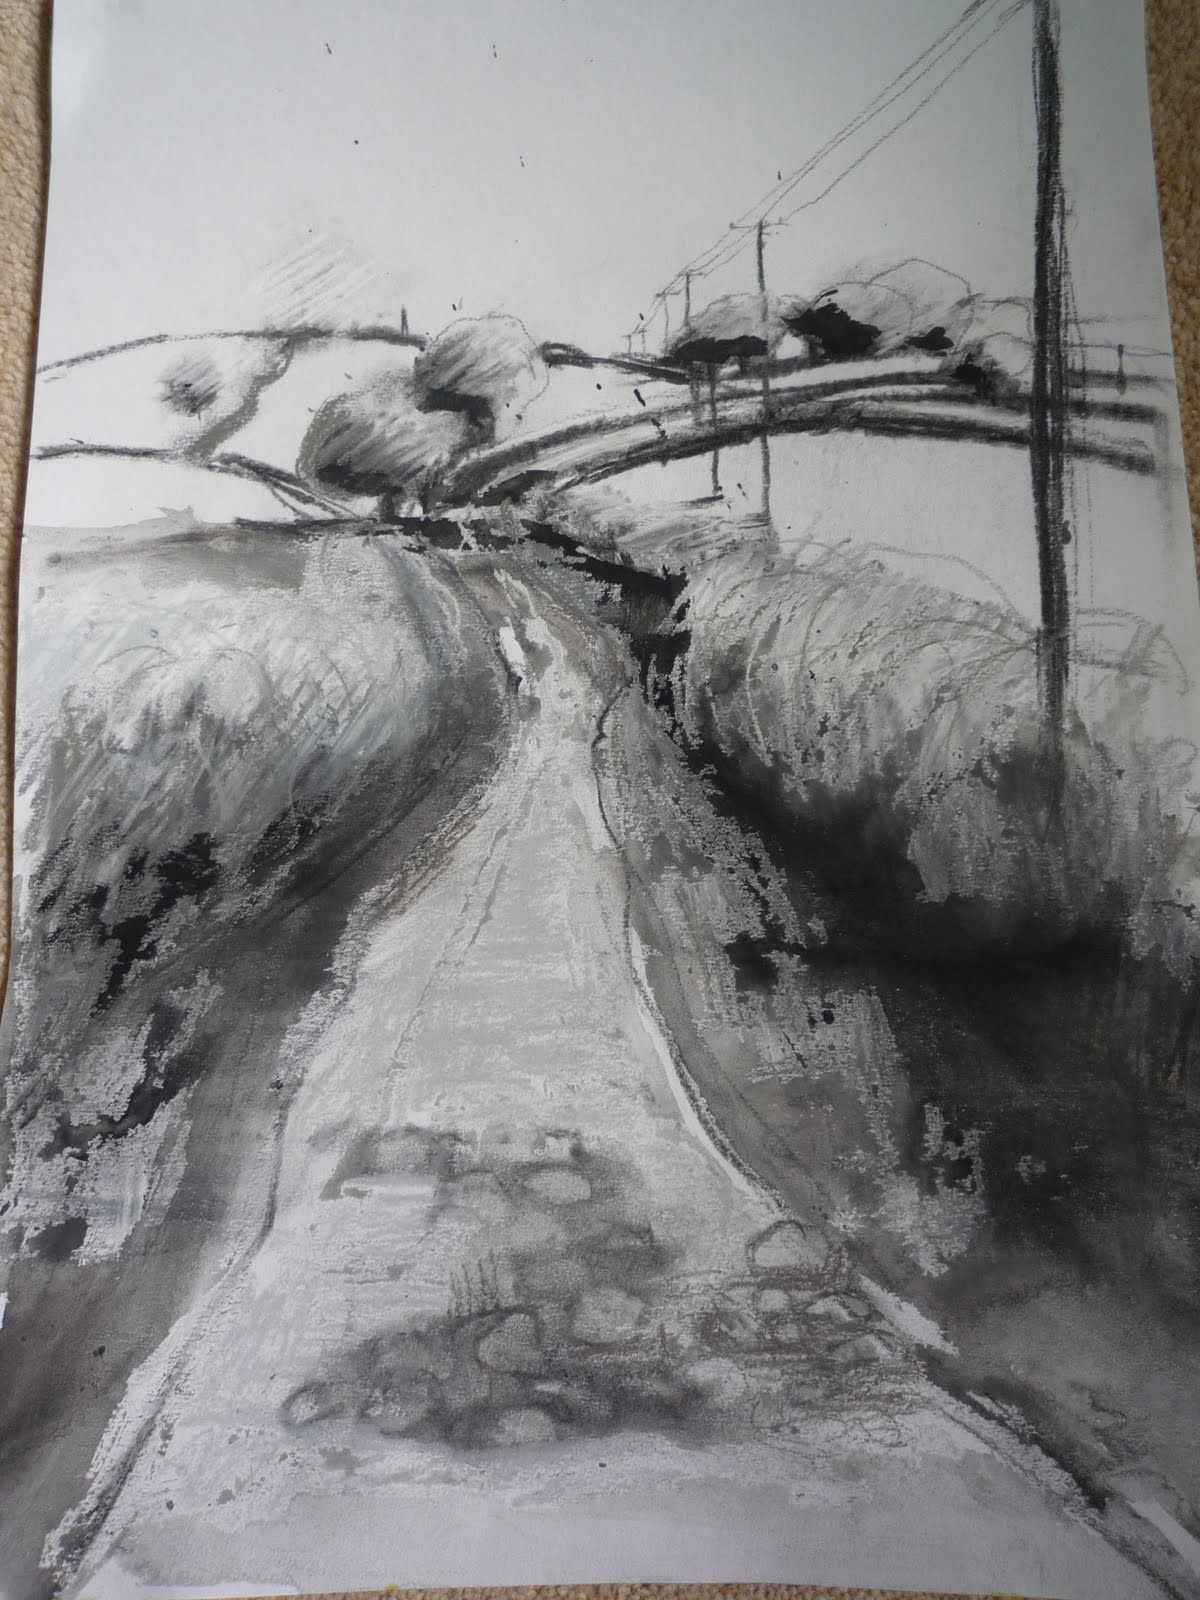 Charcoal sketches of landscapes sketch landscape of greenway